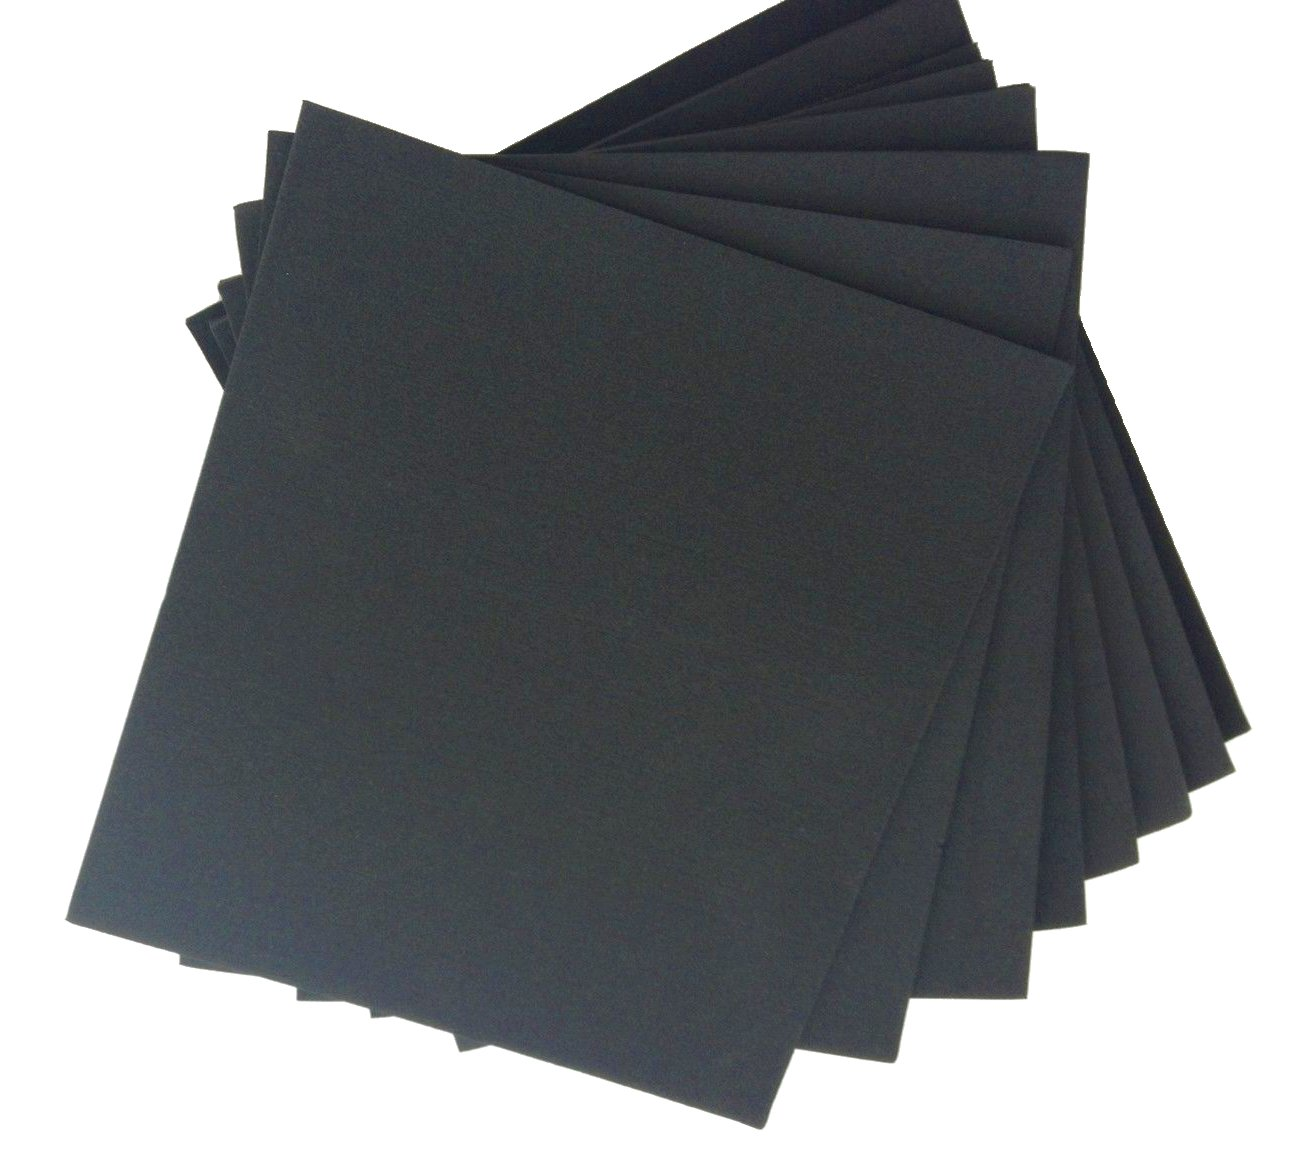 "XCEL Large Rubber Sheets Value Pack, Neoprene, 8 Piece 9"" x 10"" Assorted Thickness DIY for Gasket Material, Made in USA, Easy Cut Material"